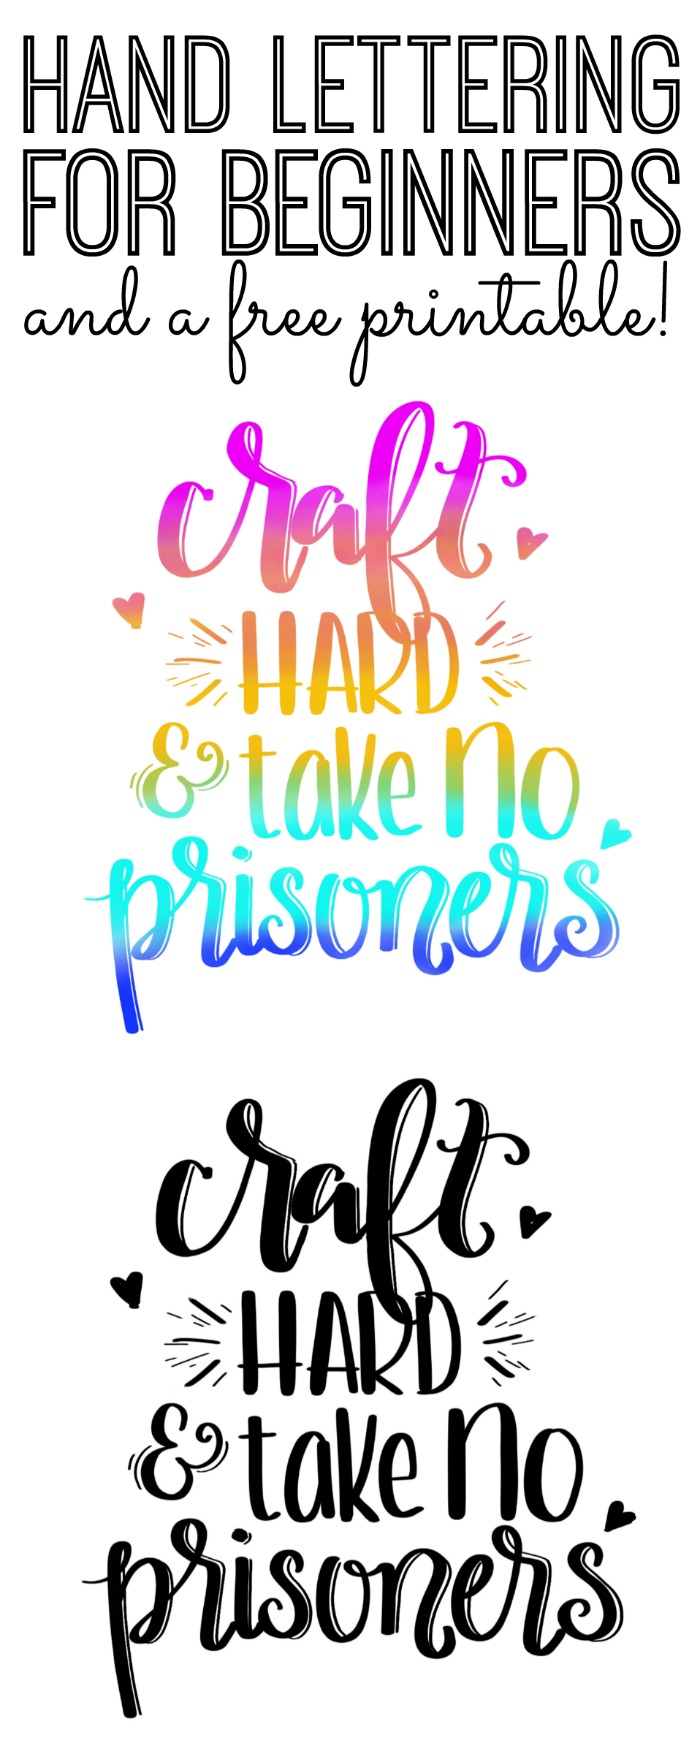 Hand Lettering for Beginners - a free printable and information on a course to make art for yourself!